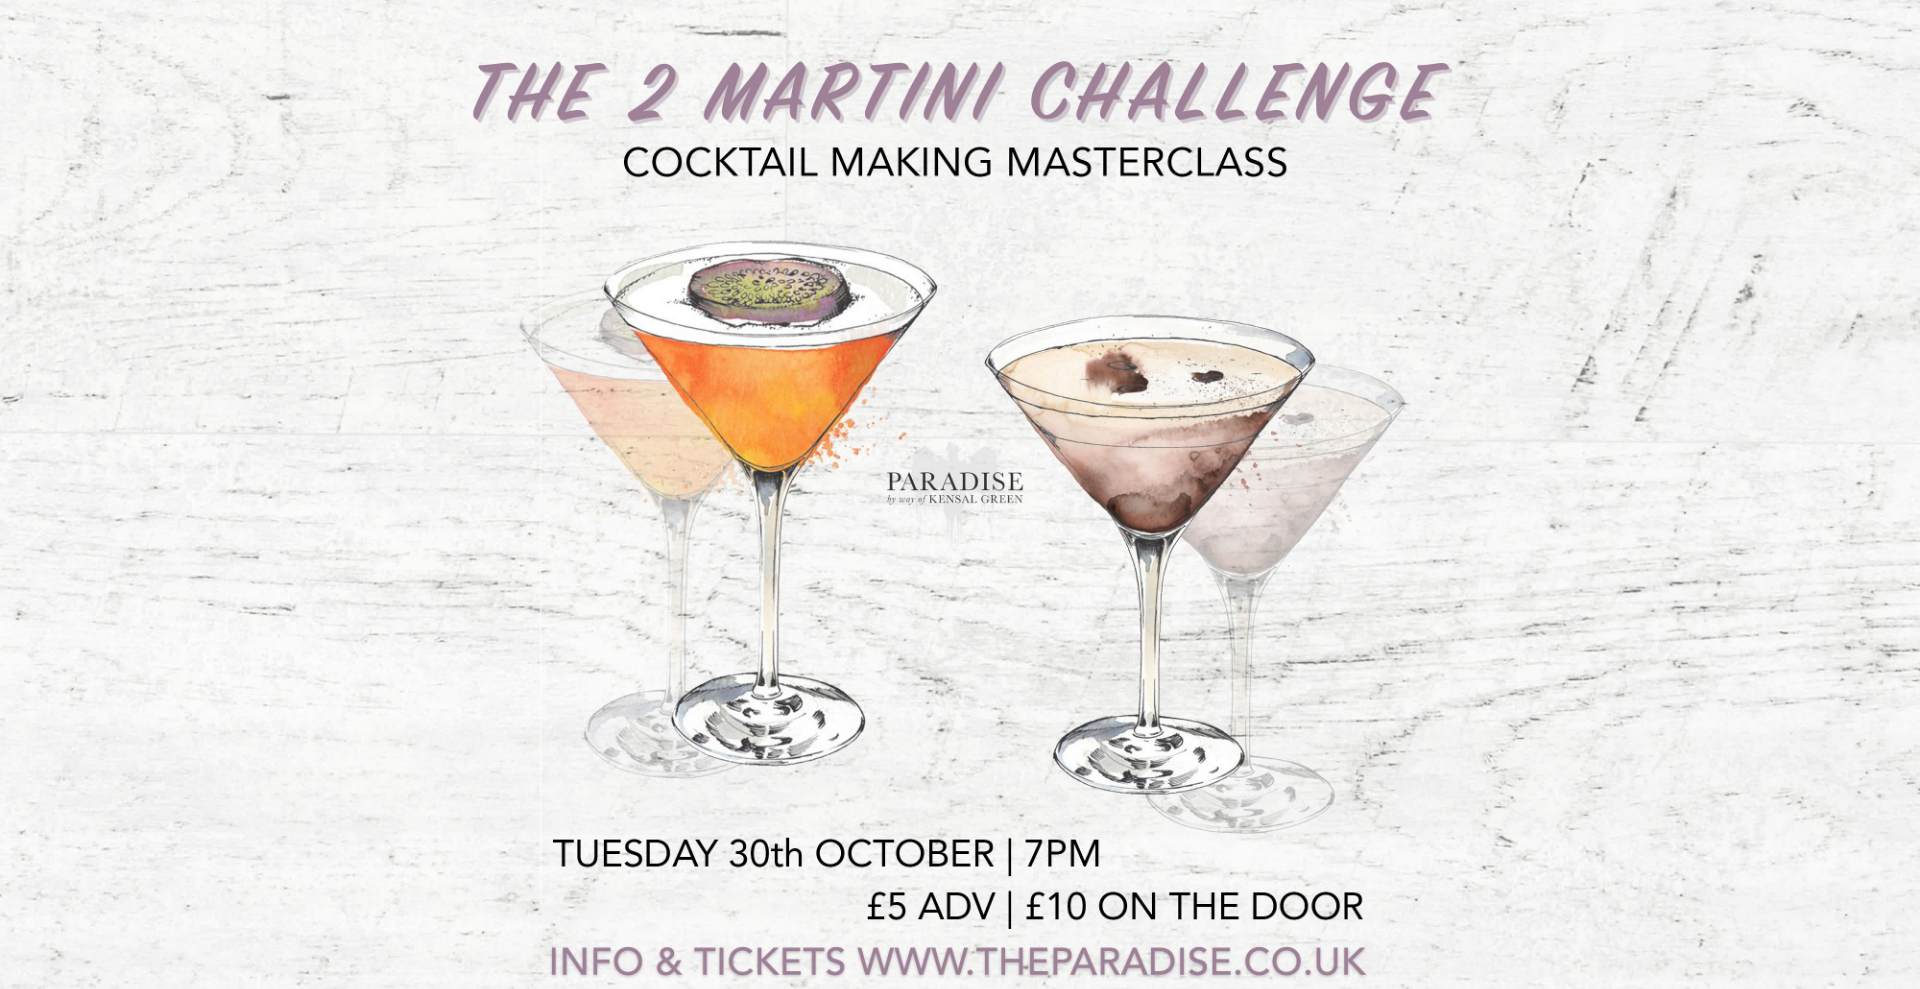 The 2 Martini Challenge - Cocktail Masterclass